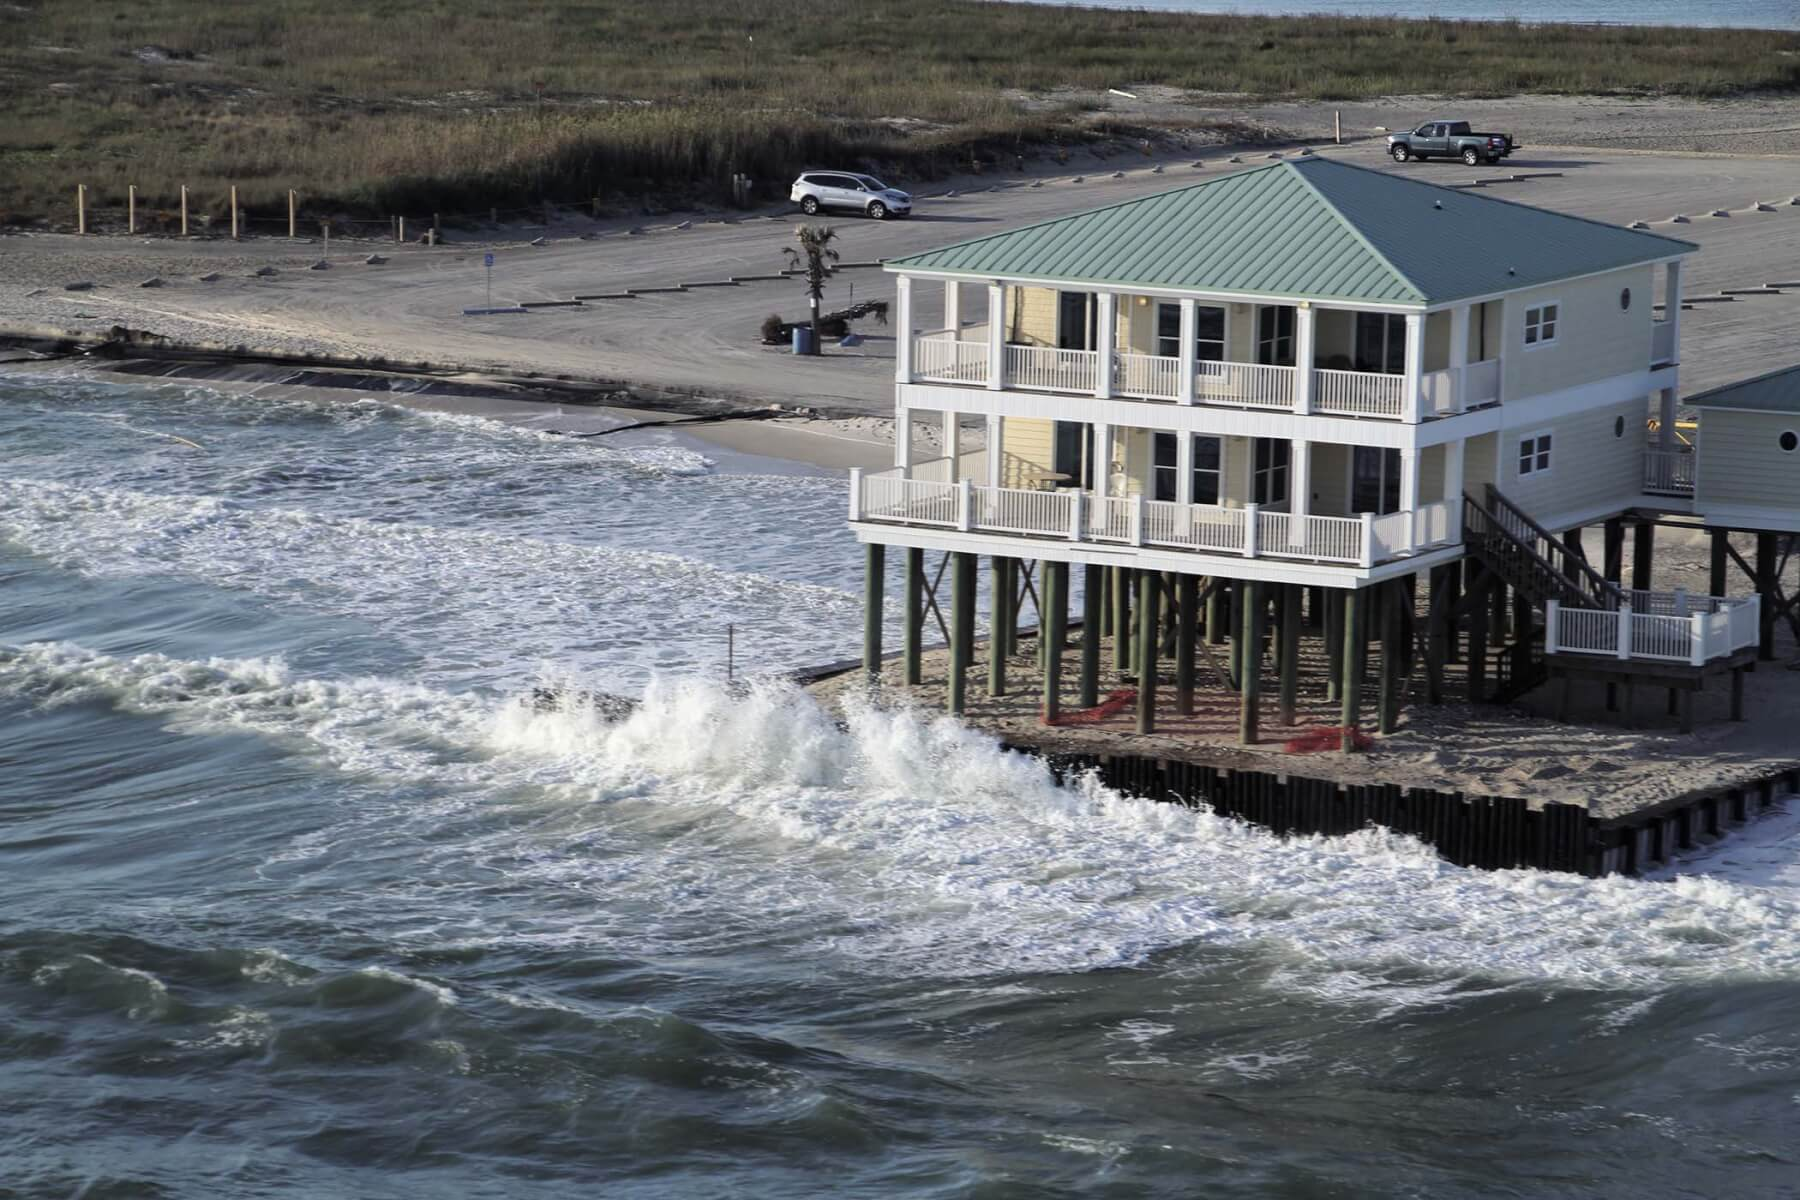 Unregulated private construction washes away million-dollar public beach